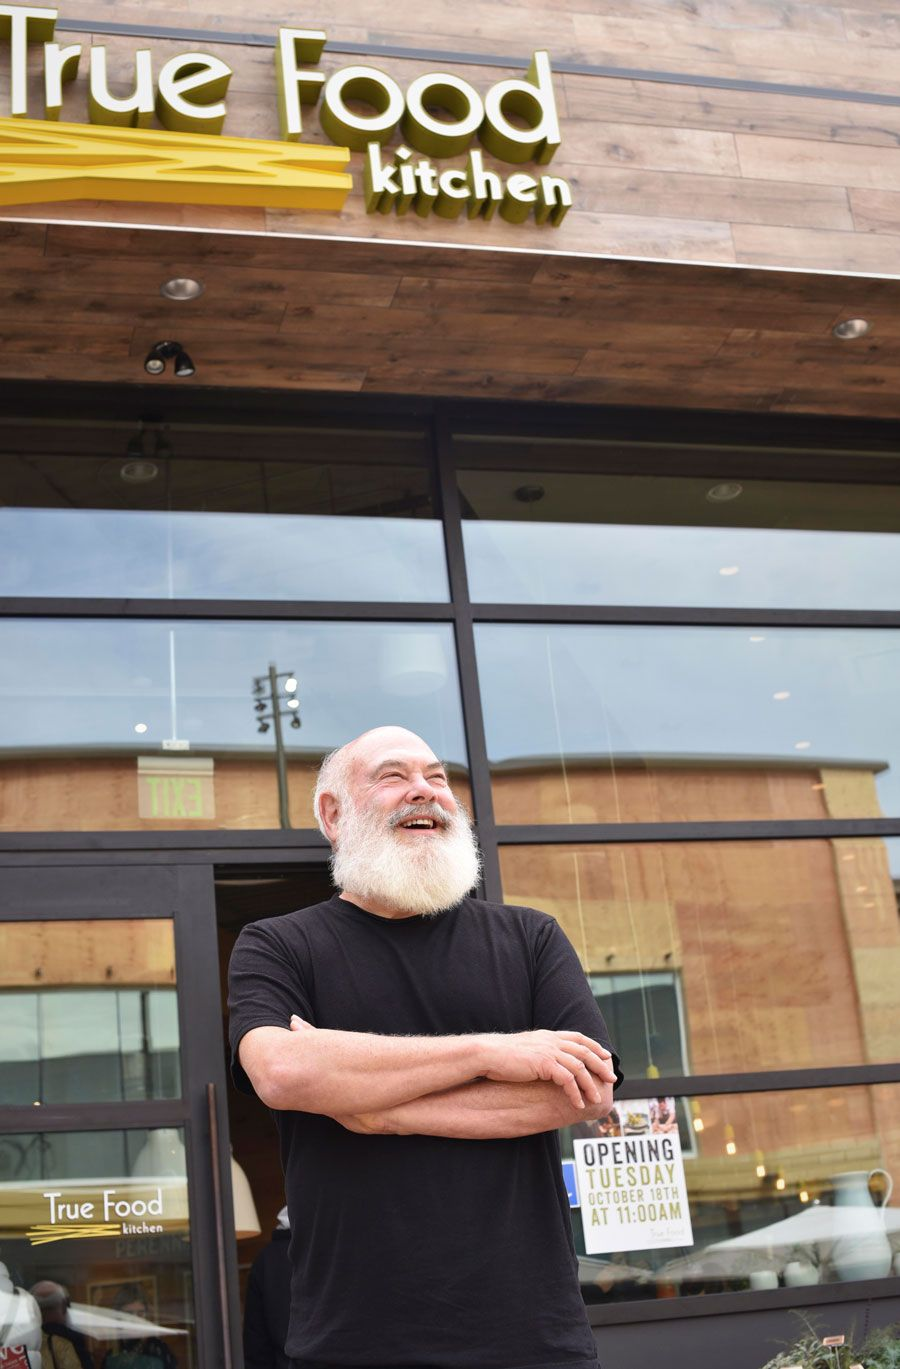 Dr andrew weil stands in front of true food kitchens new